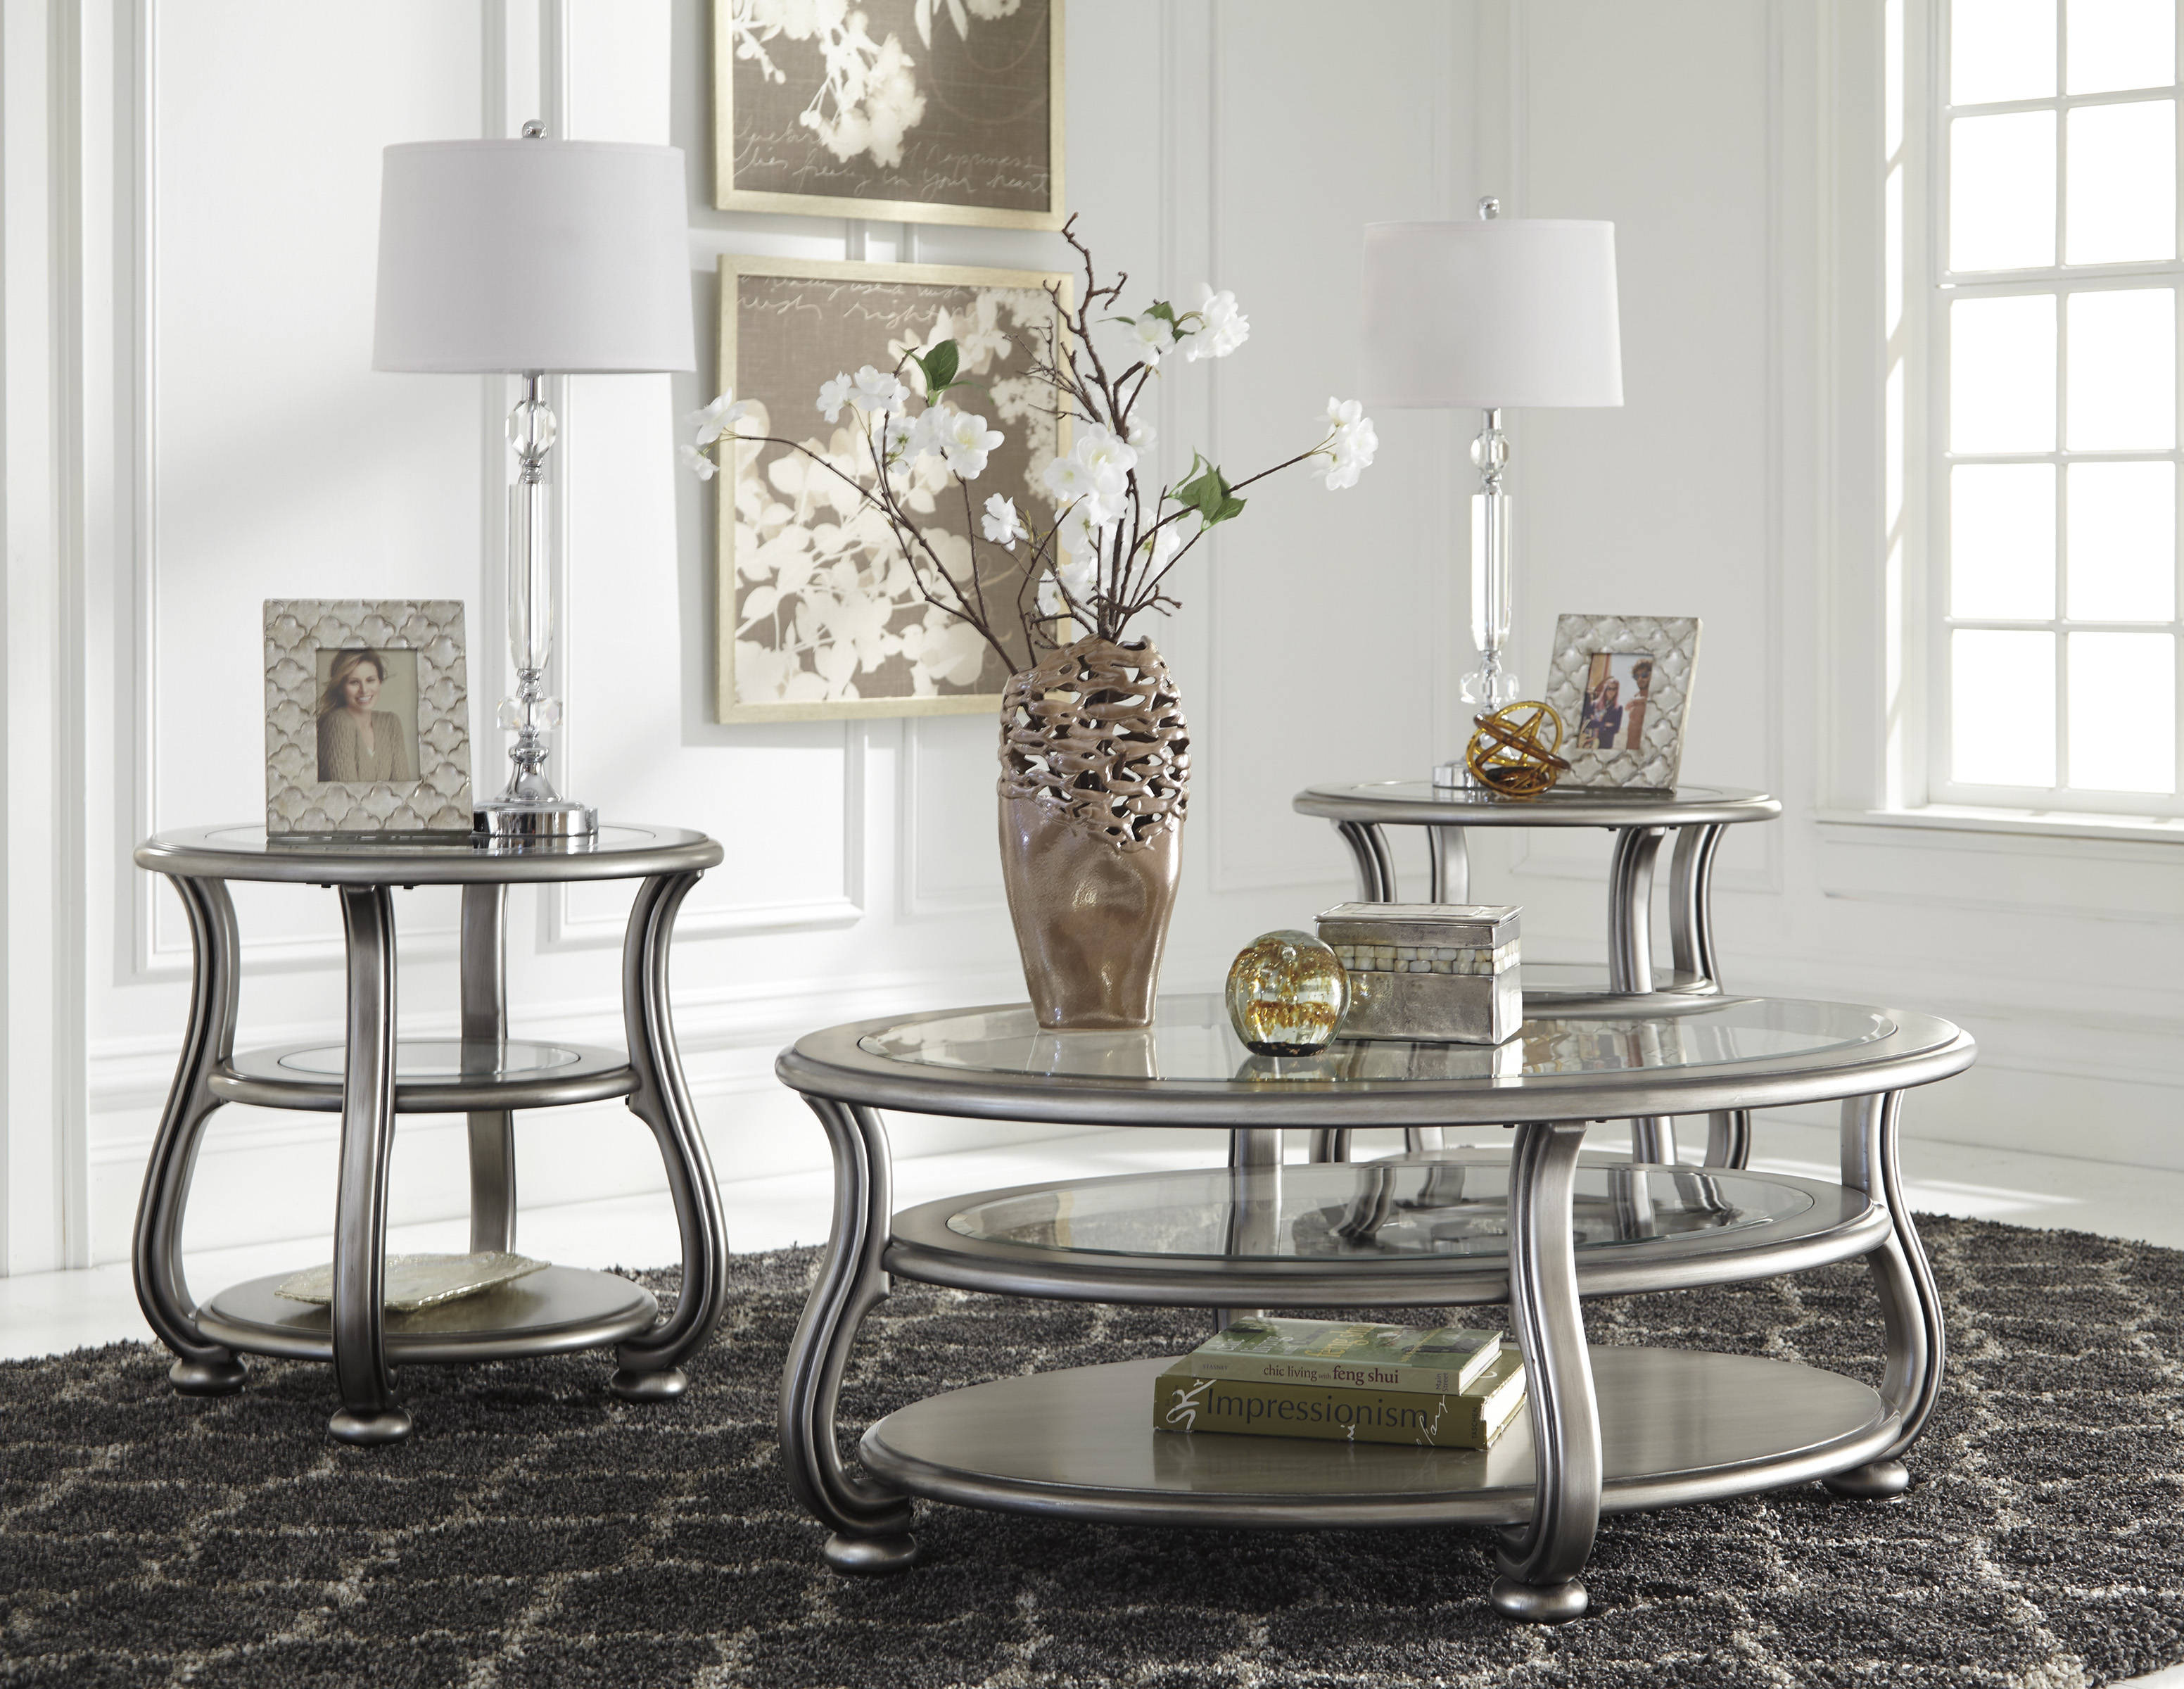 Ashley Furniture Coralayne Silver 3pc Coffee Table Set The Classy Home